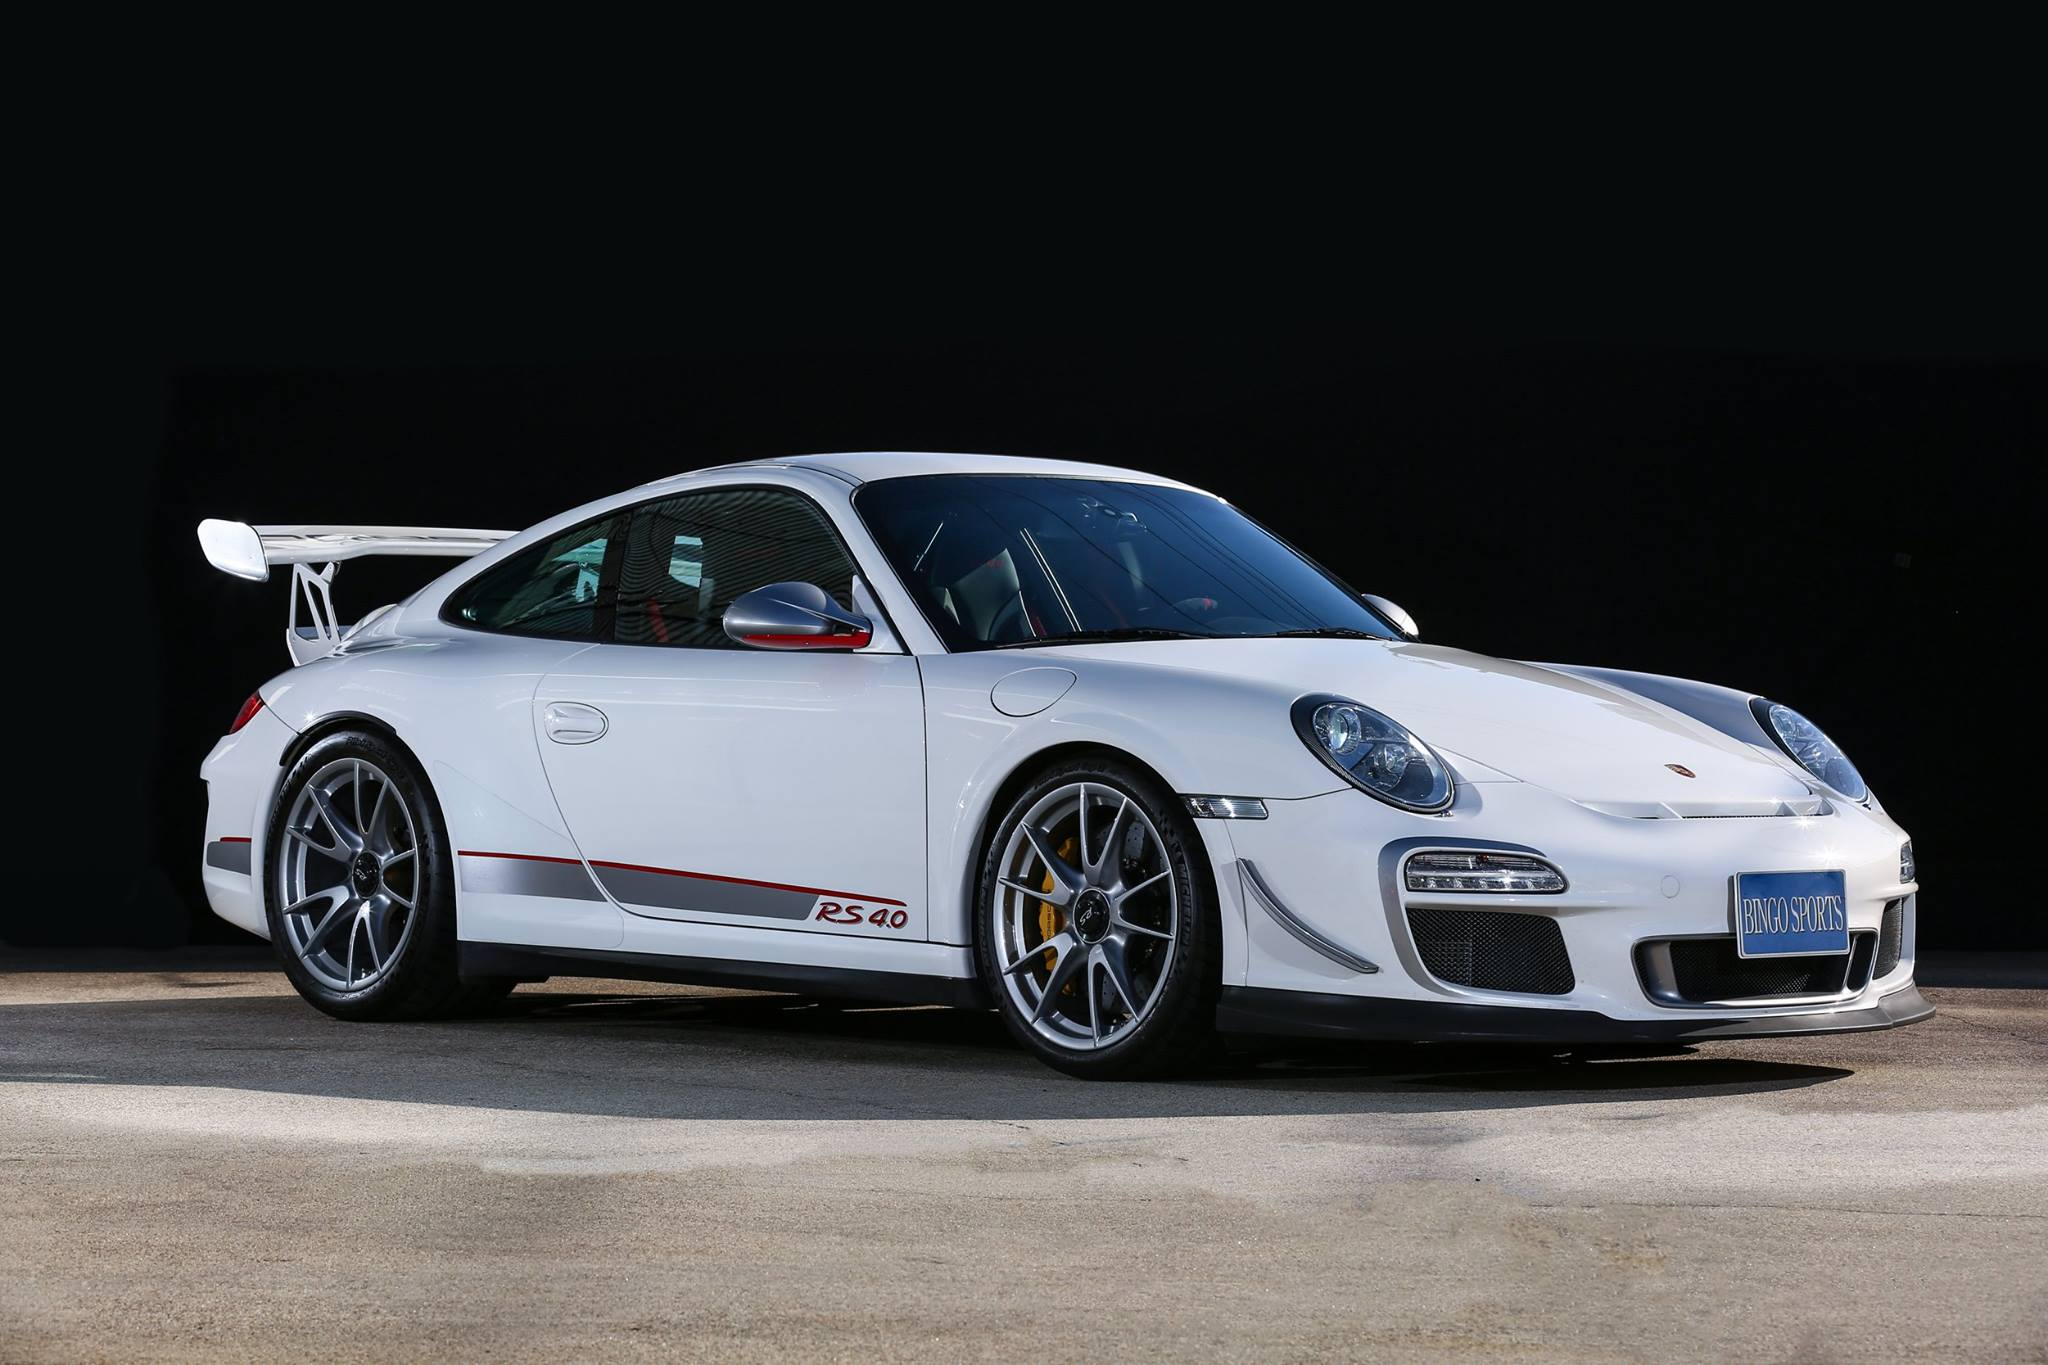 neat porsche 911 gt3 rs 4 0 for sale in japan gtspirit. Black Bedroom Furniture Sets. Home Design Ideas